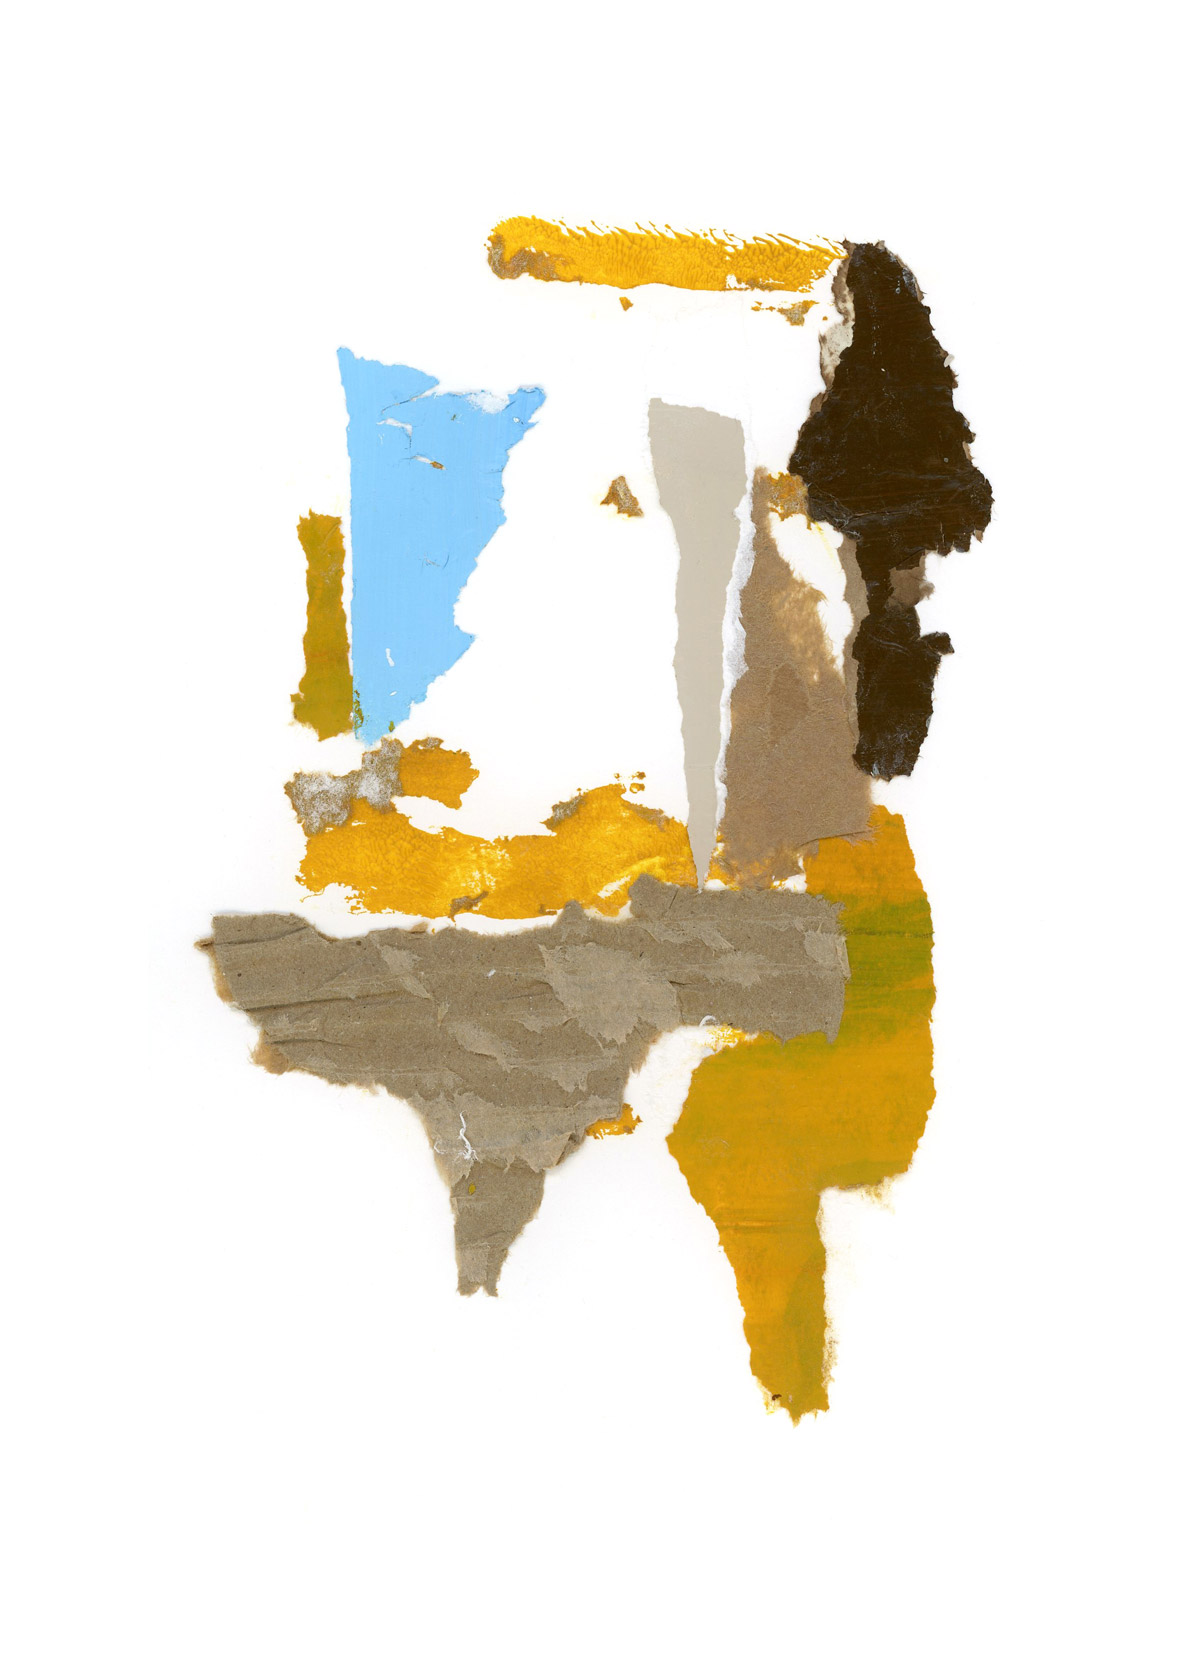 motherwell inspired series, collage no. 5